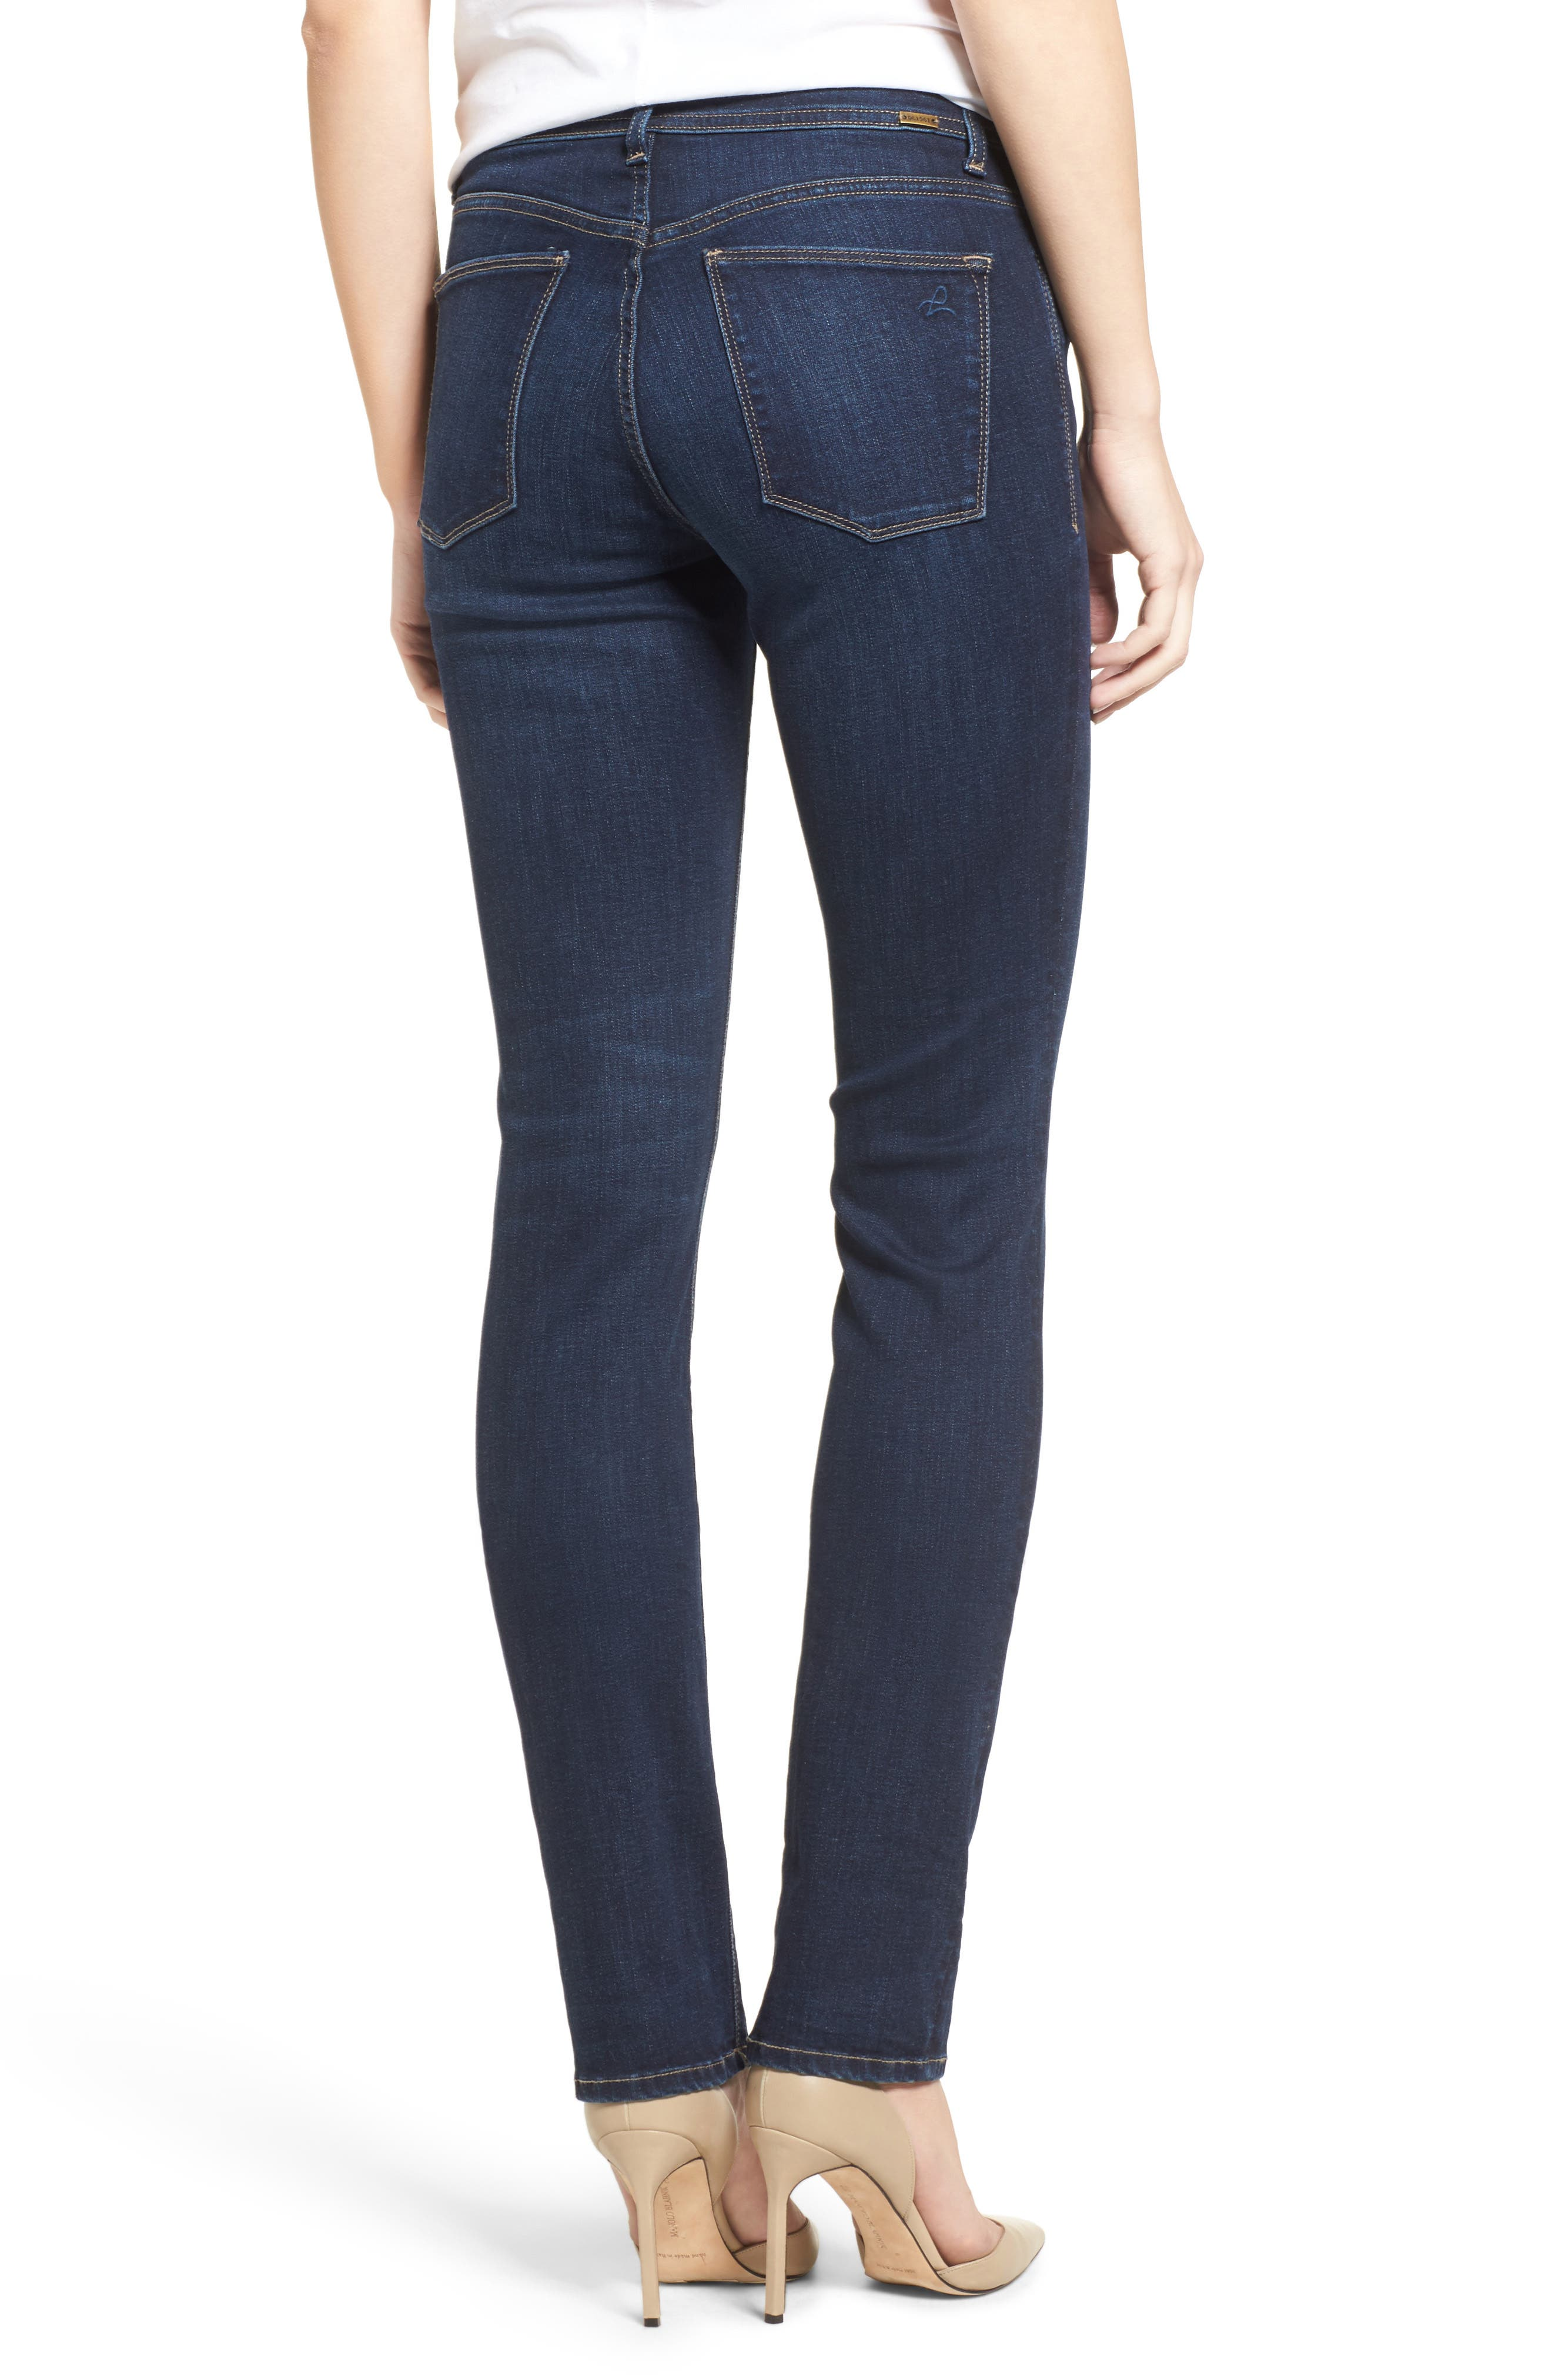 Alternate Image 2  - DL1961 'Coco' Curvy Slim Straight Leg Jeans (Atlas)